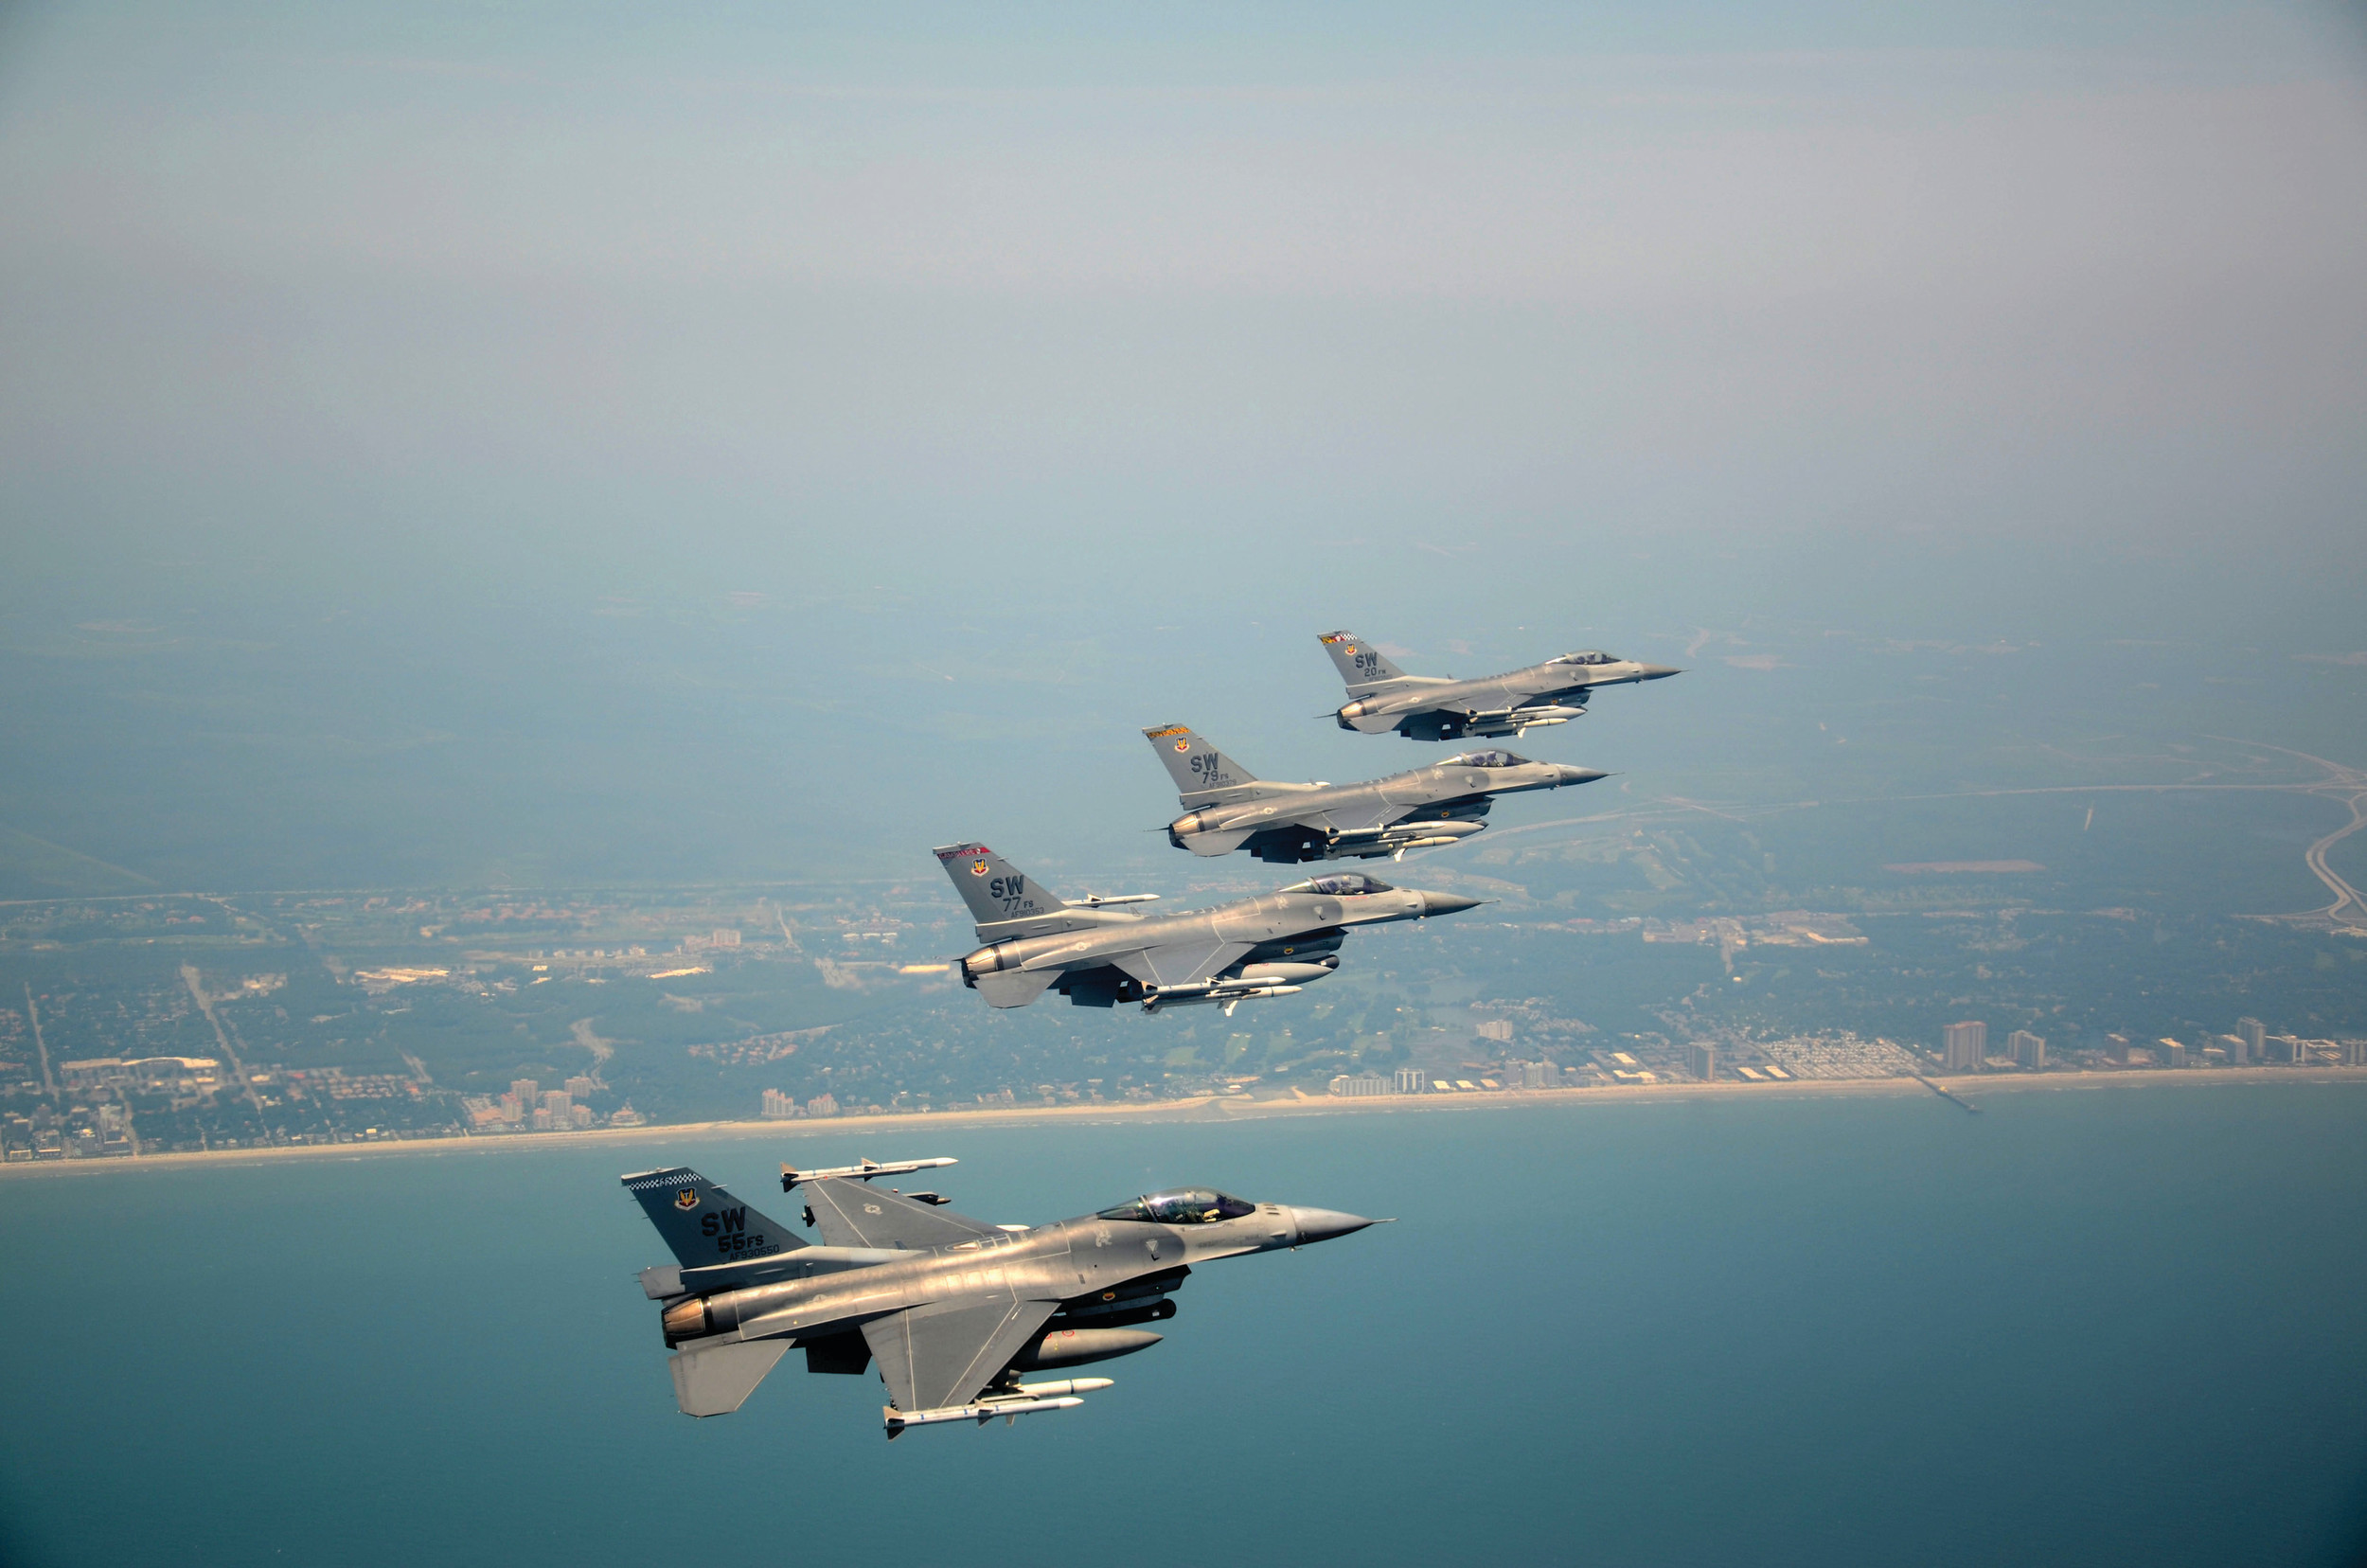 Four F-16 Vipers assigned to the 20th Fighter Wing, Shaw Air Force Base, fly over the South Carolina coast as part of a past Salute from the Shore tribute.